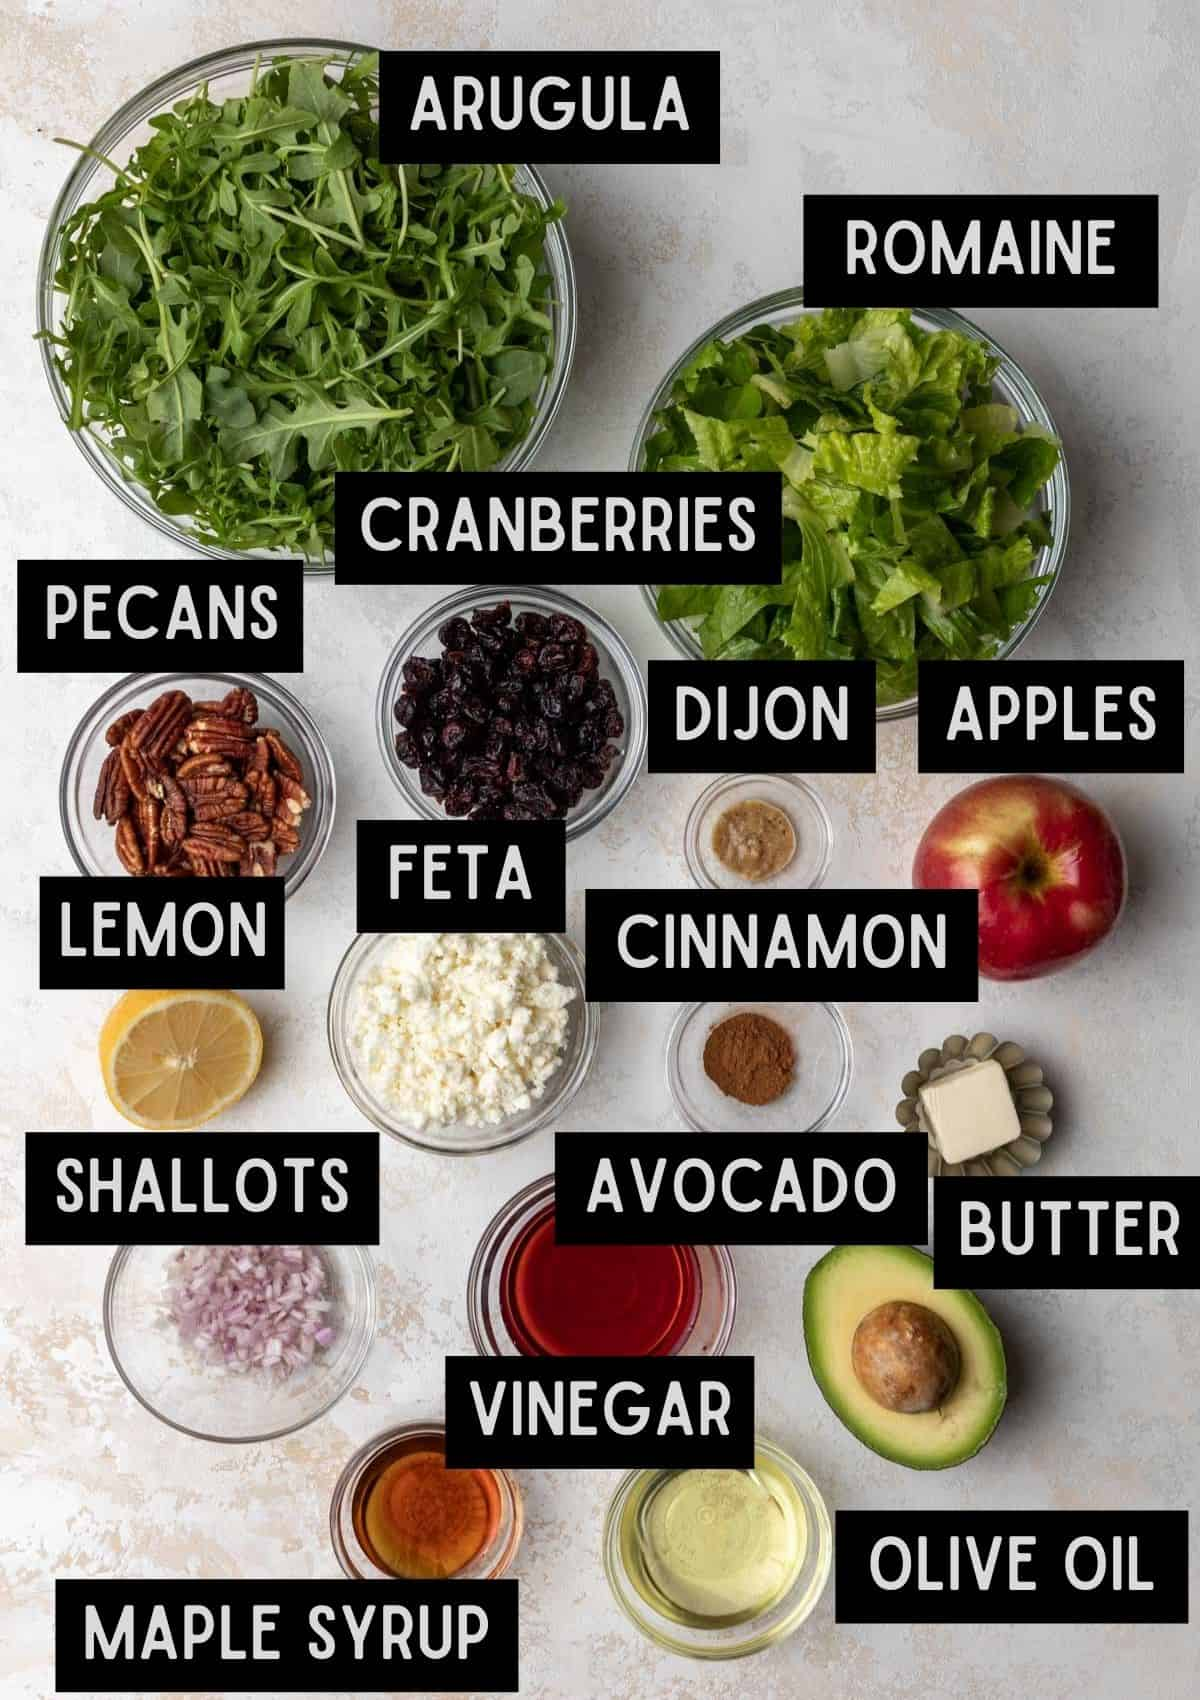 Labelled ingredients for apple, avocado, and arugula salad (see recipe for details).